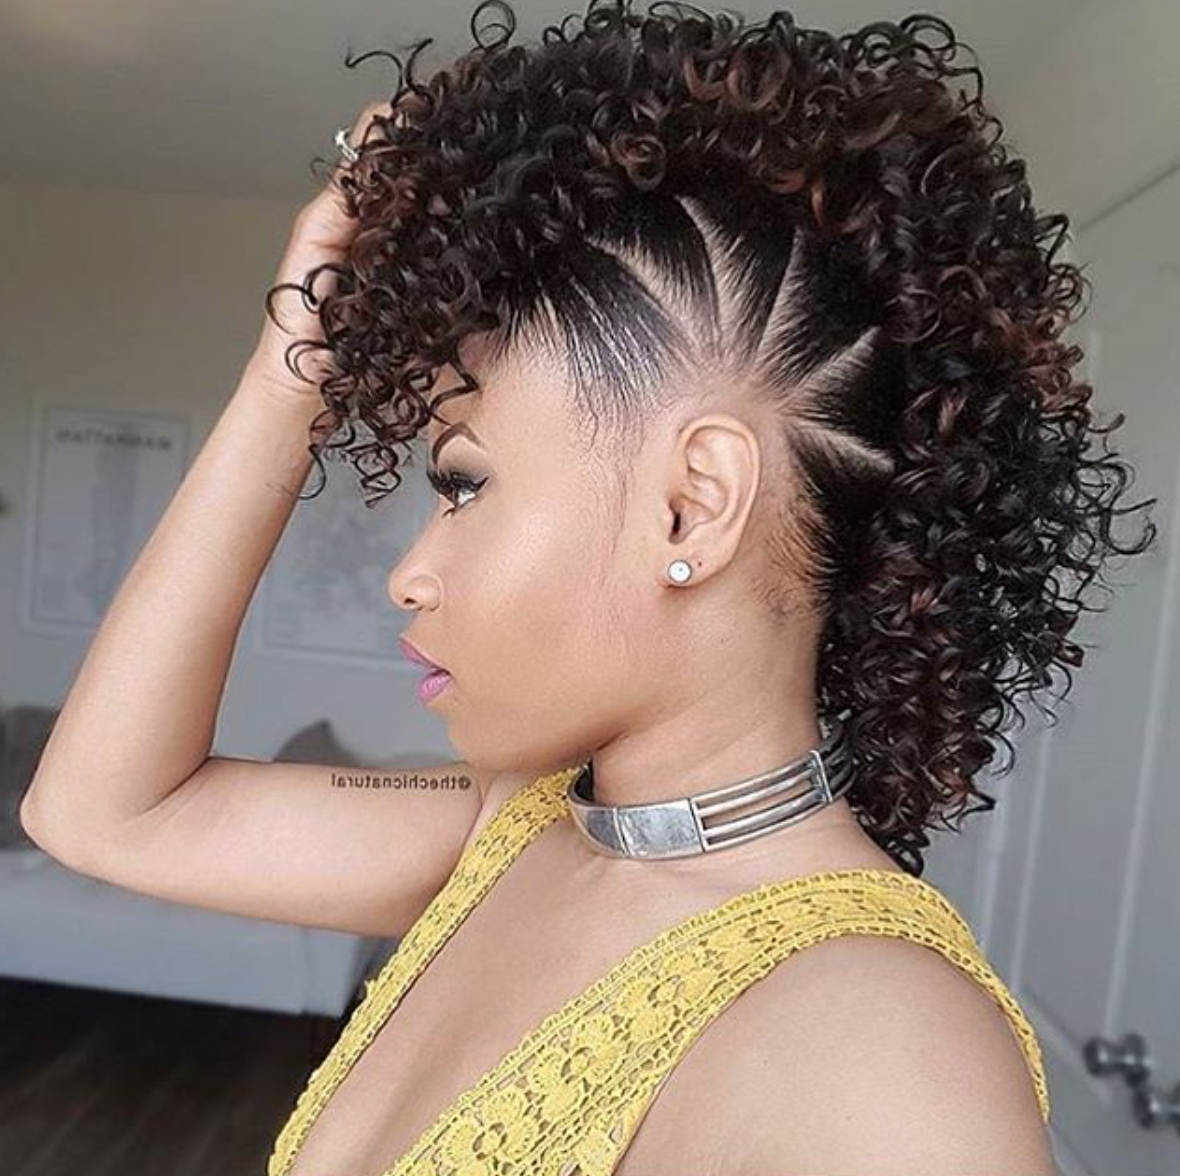 She Used Jbco On A Twa Twist Out, The Style She Got Out Of Throughout Most Recently Released Braids And Curls Mohawk Hairstyles (View 1 of 20)